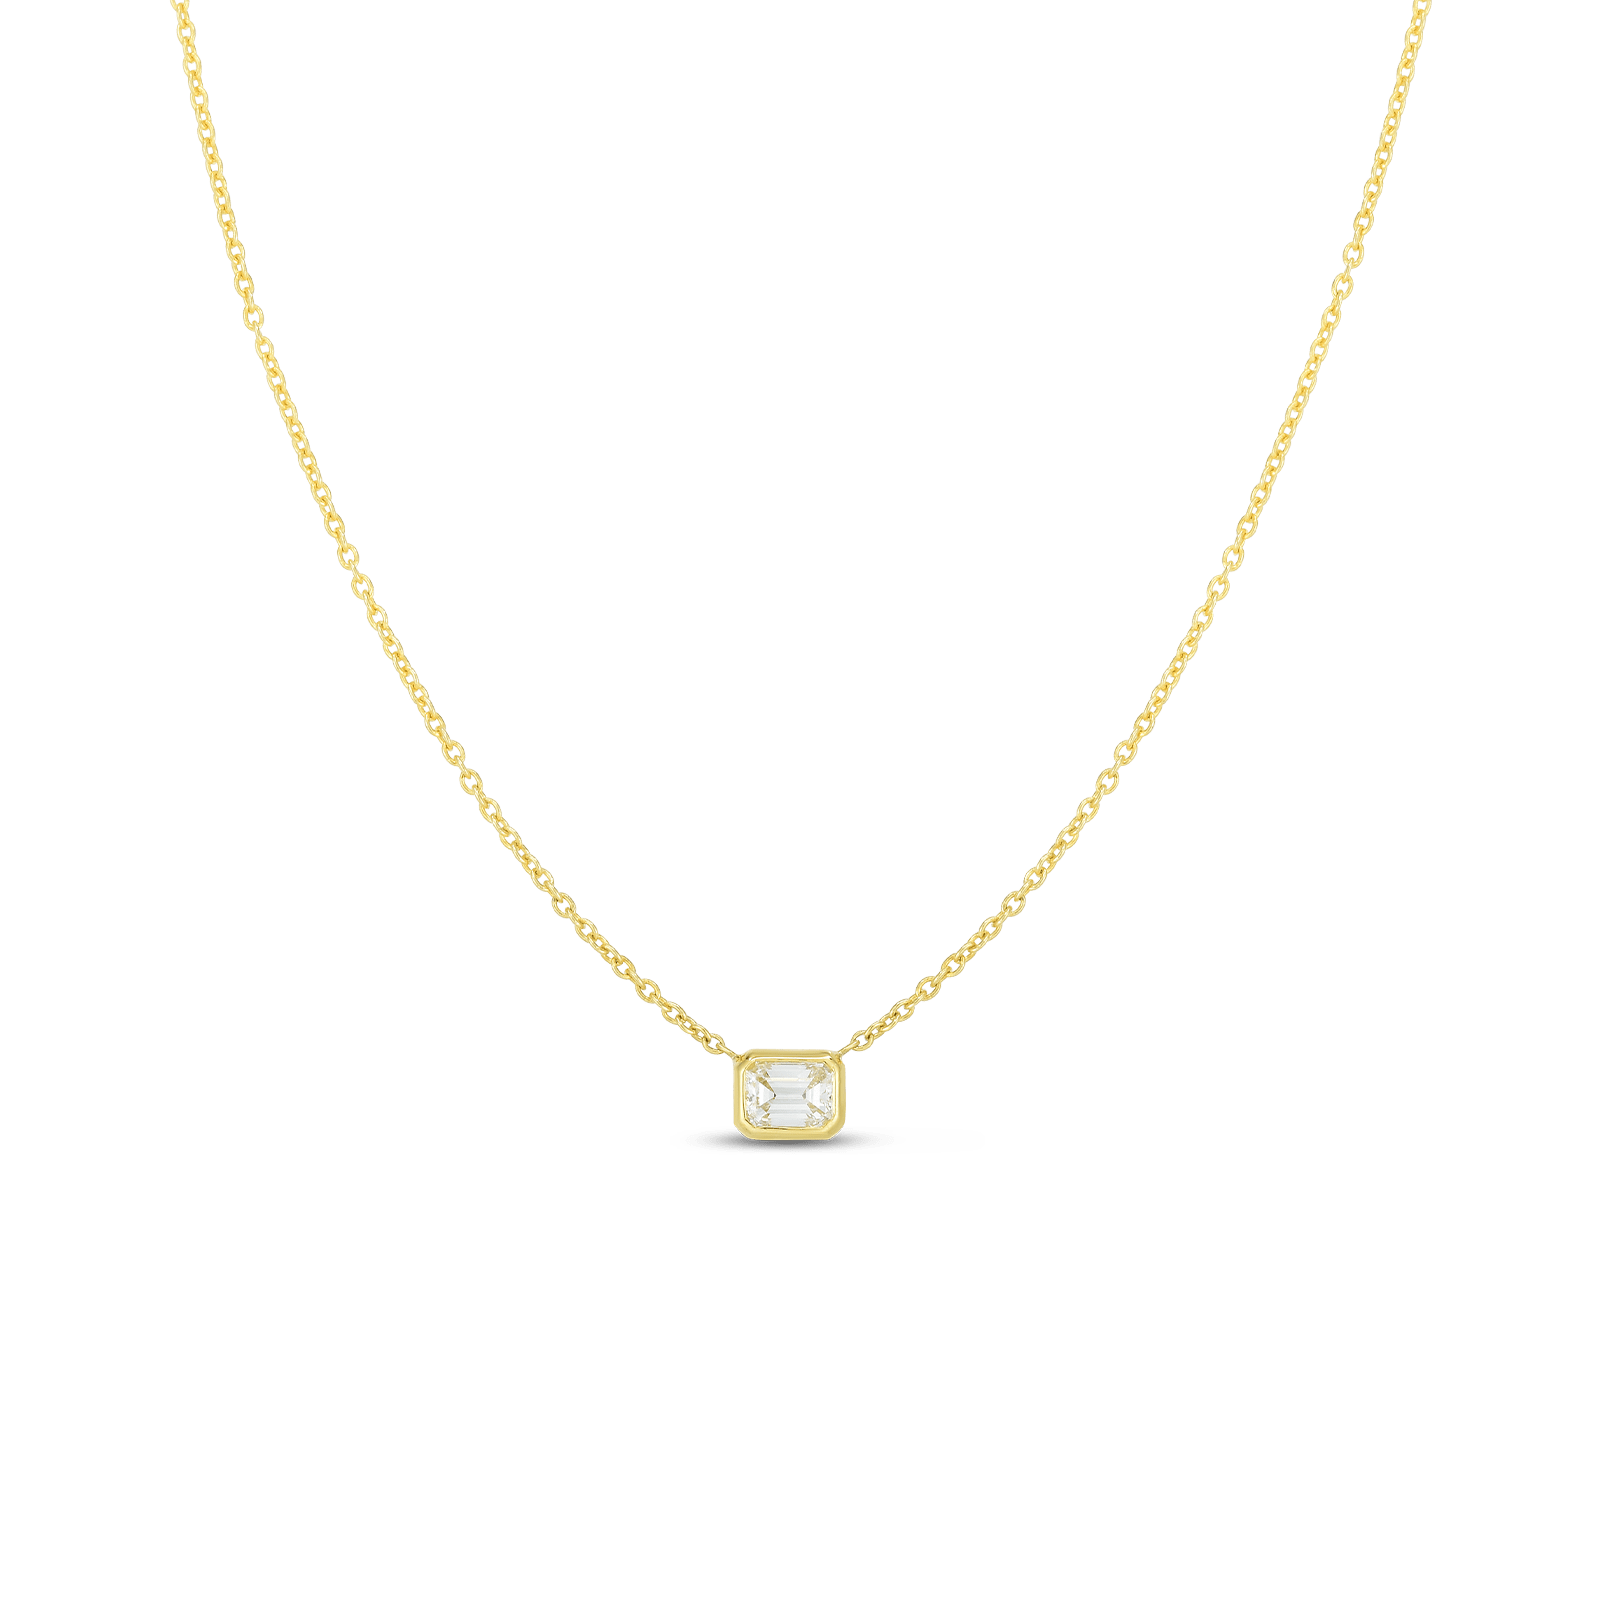 Roberto Coin 18K Yellow Gold .17cts  Diamond Gold Necklace with Stones 111365AYCHX0